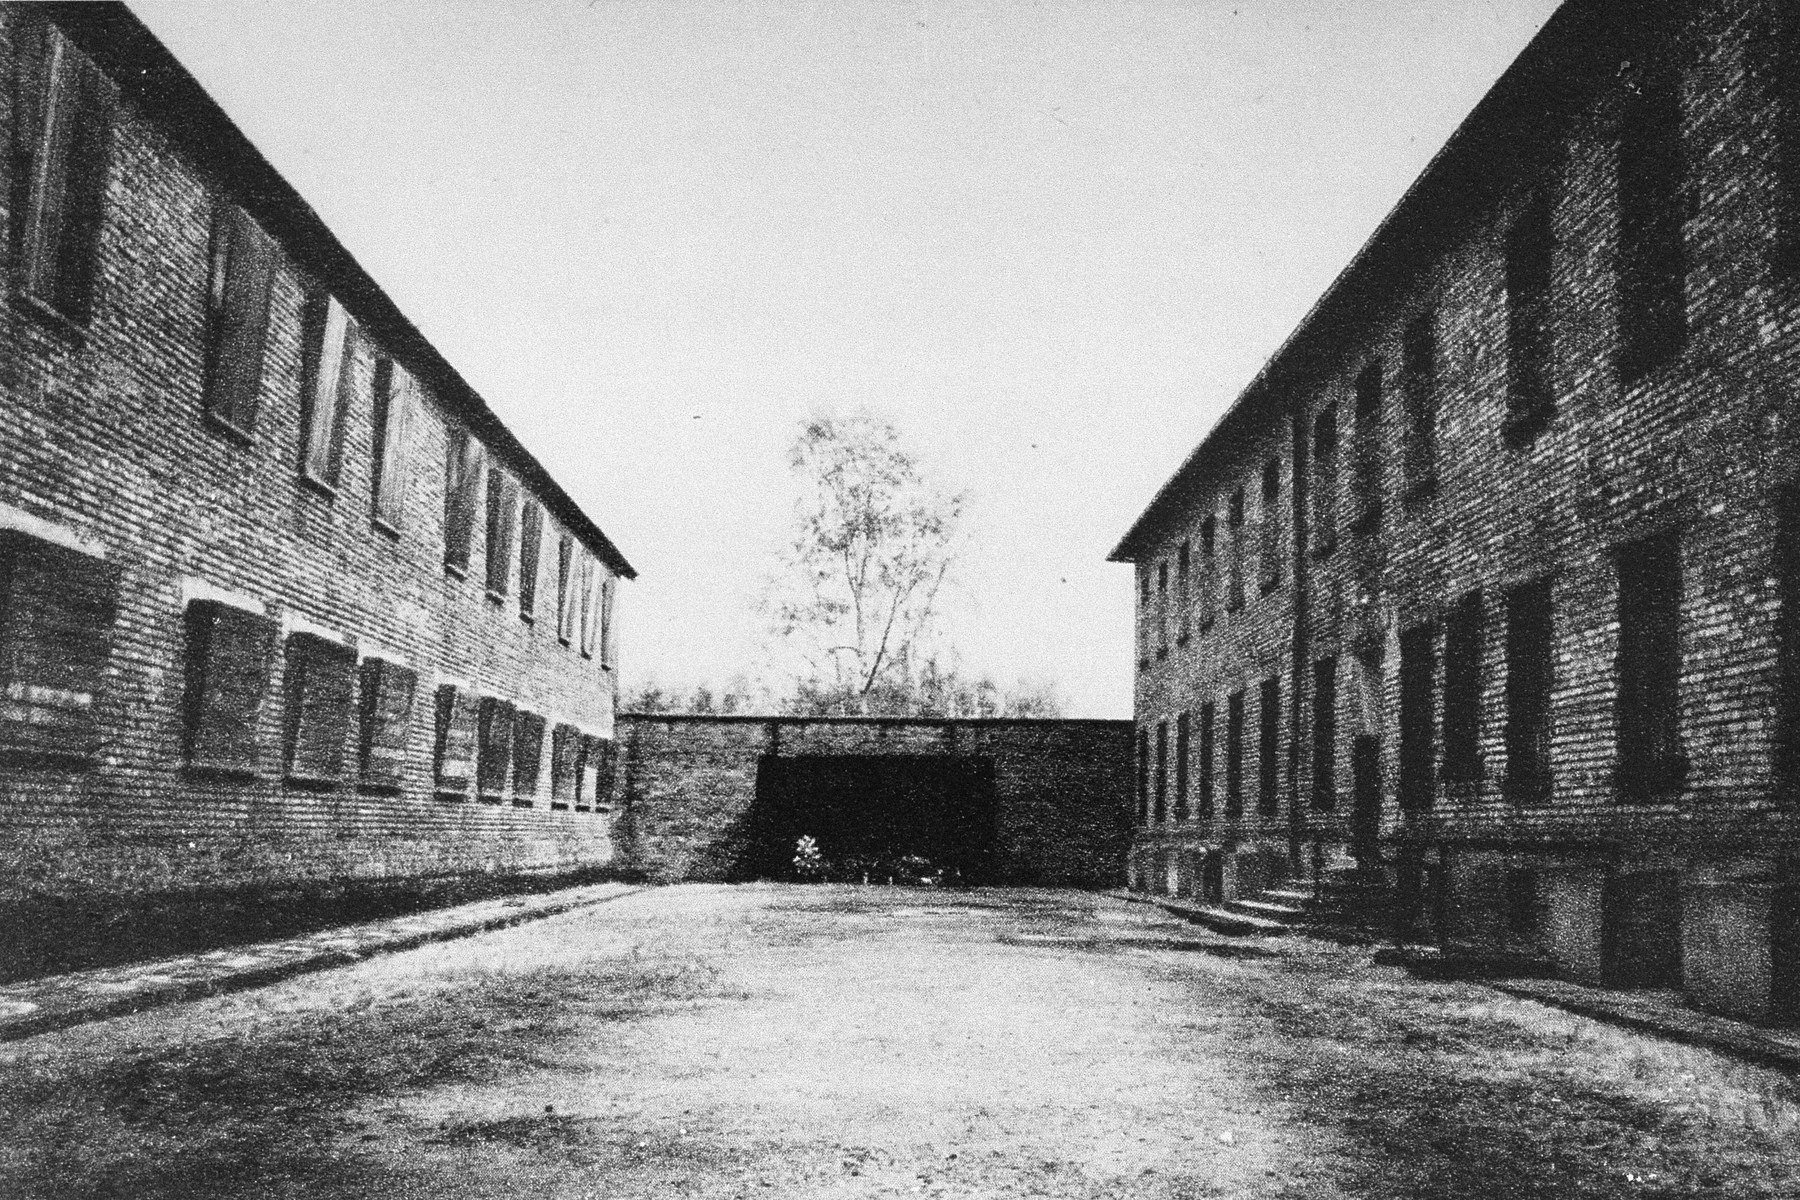 View of the execution wall next to Block 11 in the Auschwitz I camp after liberation. The original wall was dismanteled in February 1944. This photo is thought to most likely have been taken in late 1946 or early 1947.